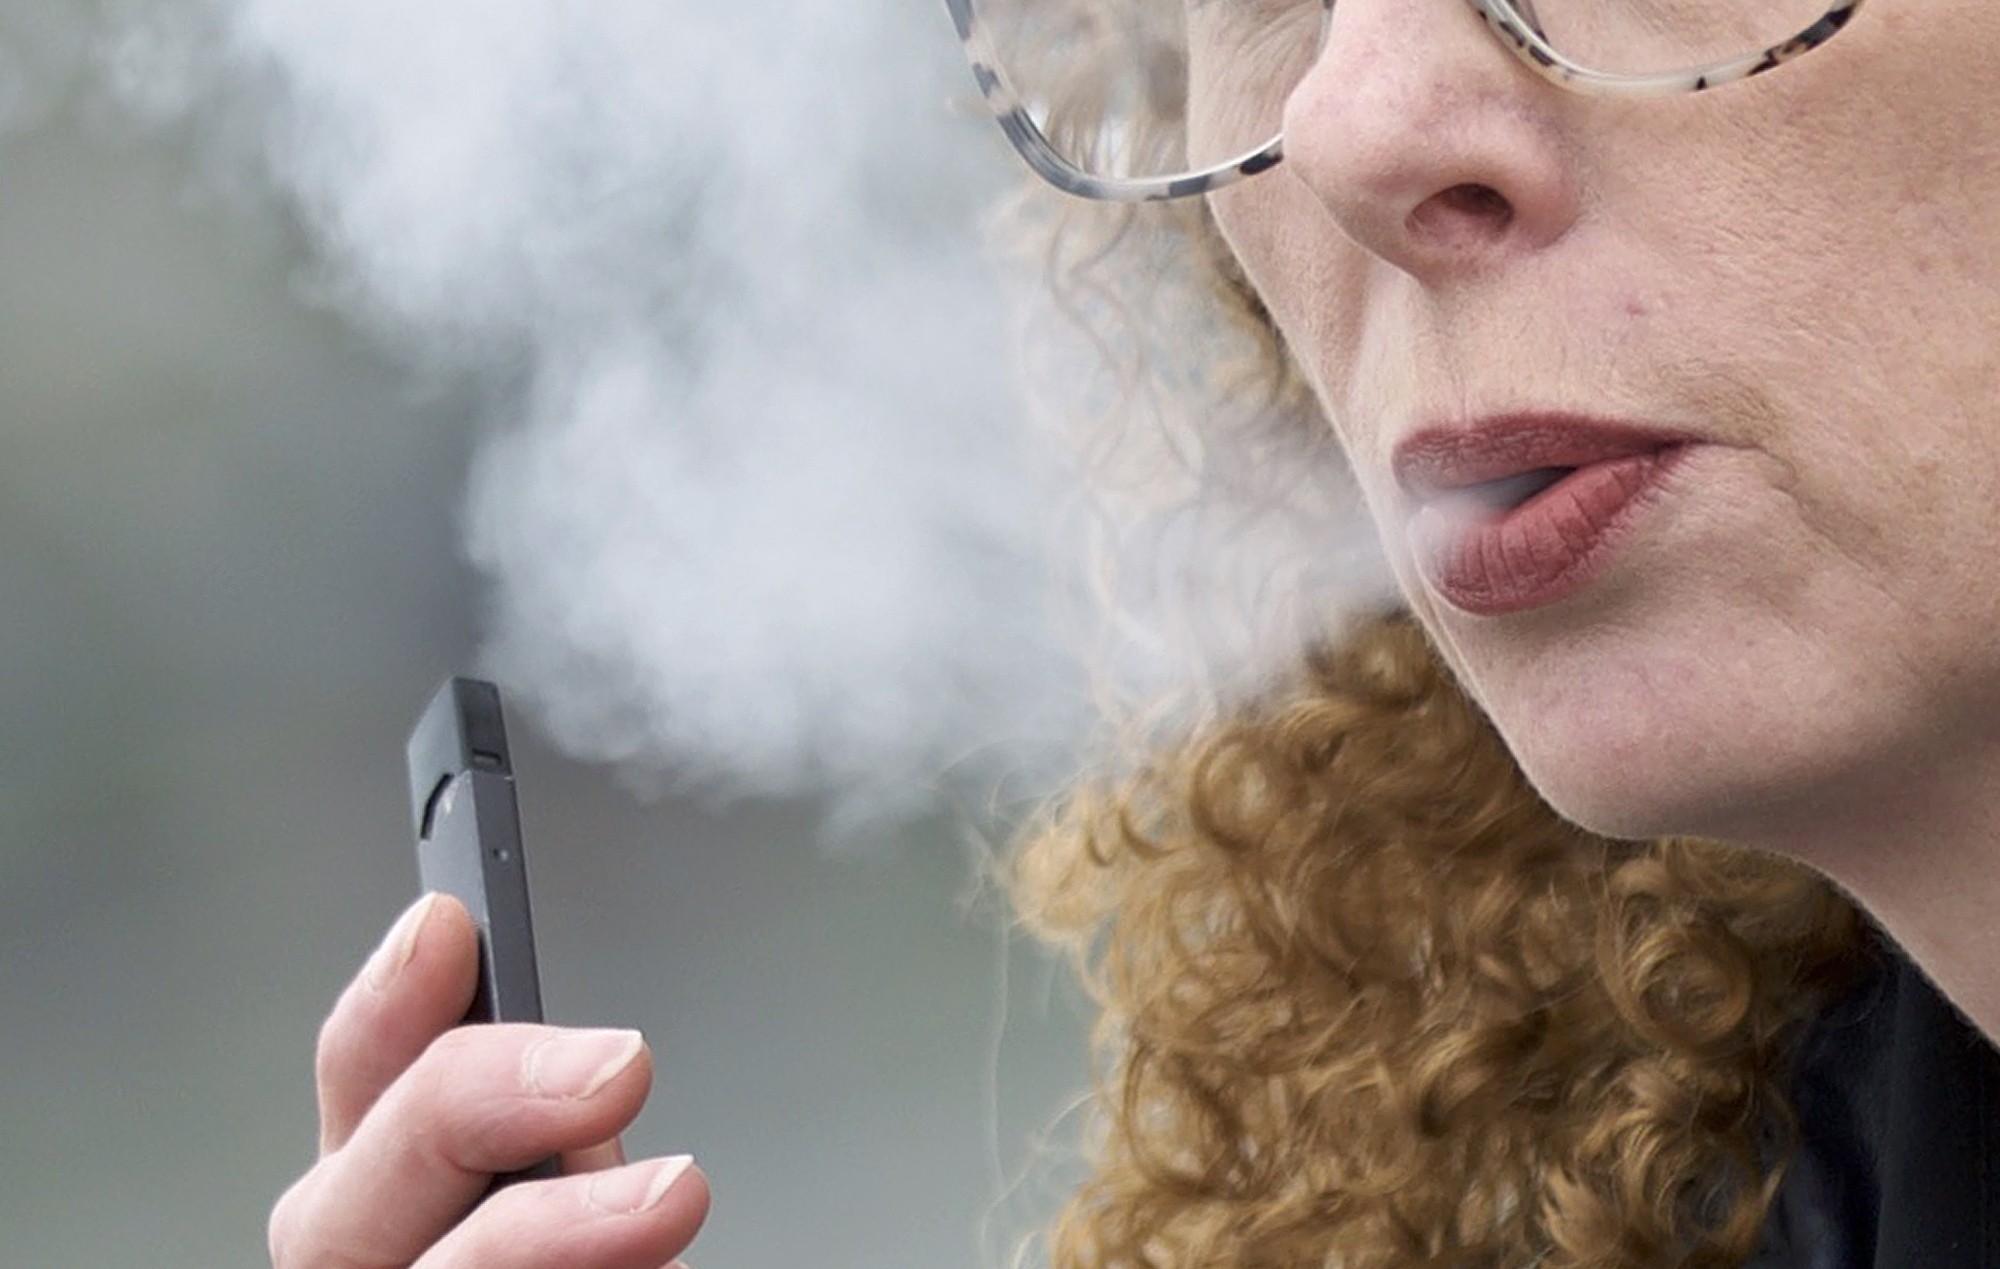 In this April 16, 2019 file photo, a woman exhales while vaping from a Juul pen e-cigarette in Vancouver, Wash.